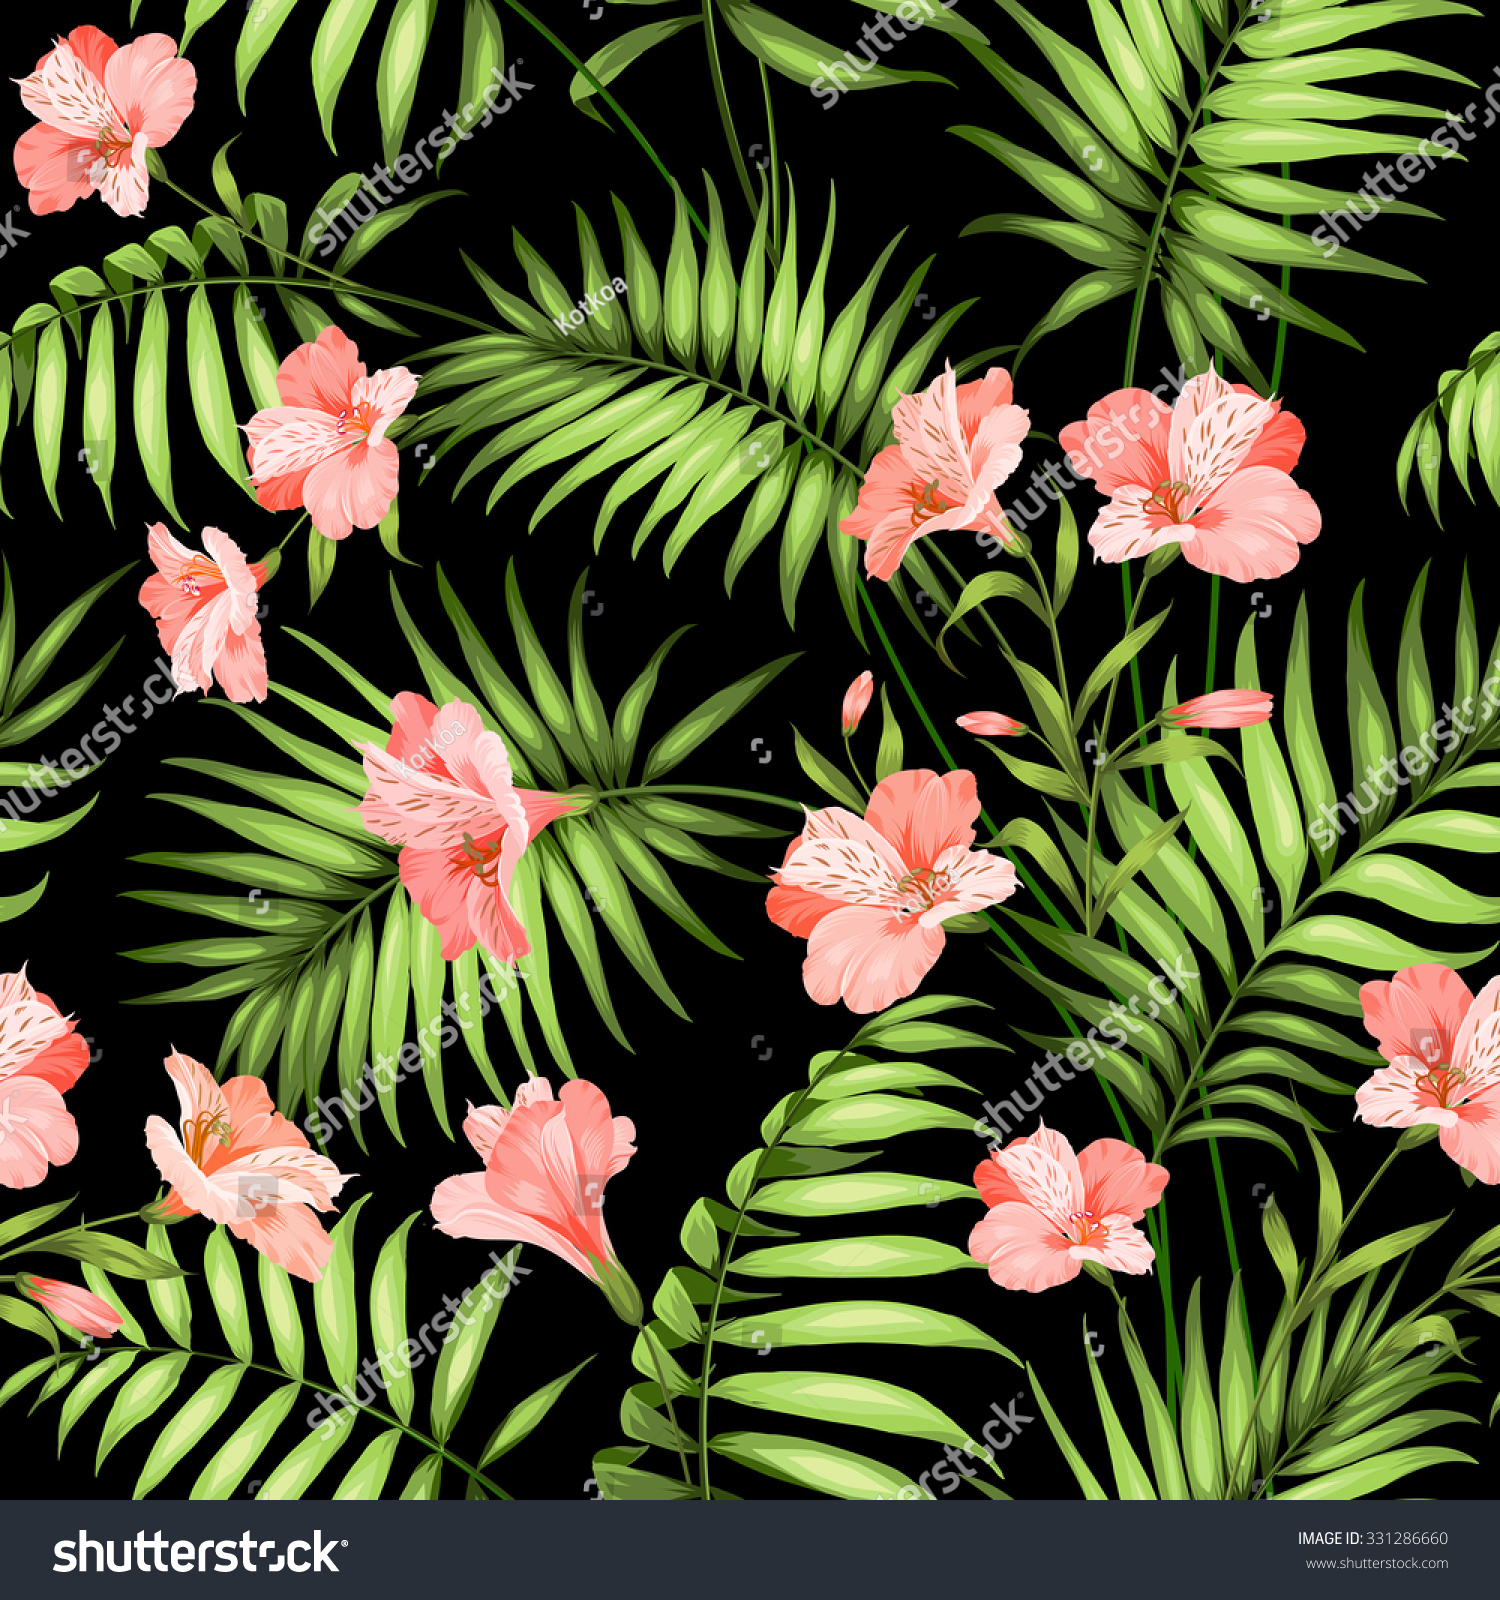 Seamless tropical pattern blossom flowers seamless stock vector seamless tropical pattern blossom flowers for seamless pattern background beautiful tropical flowers tropical izmirmasajfo